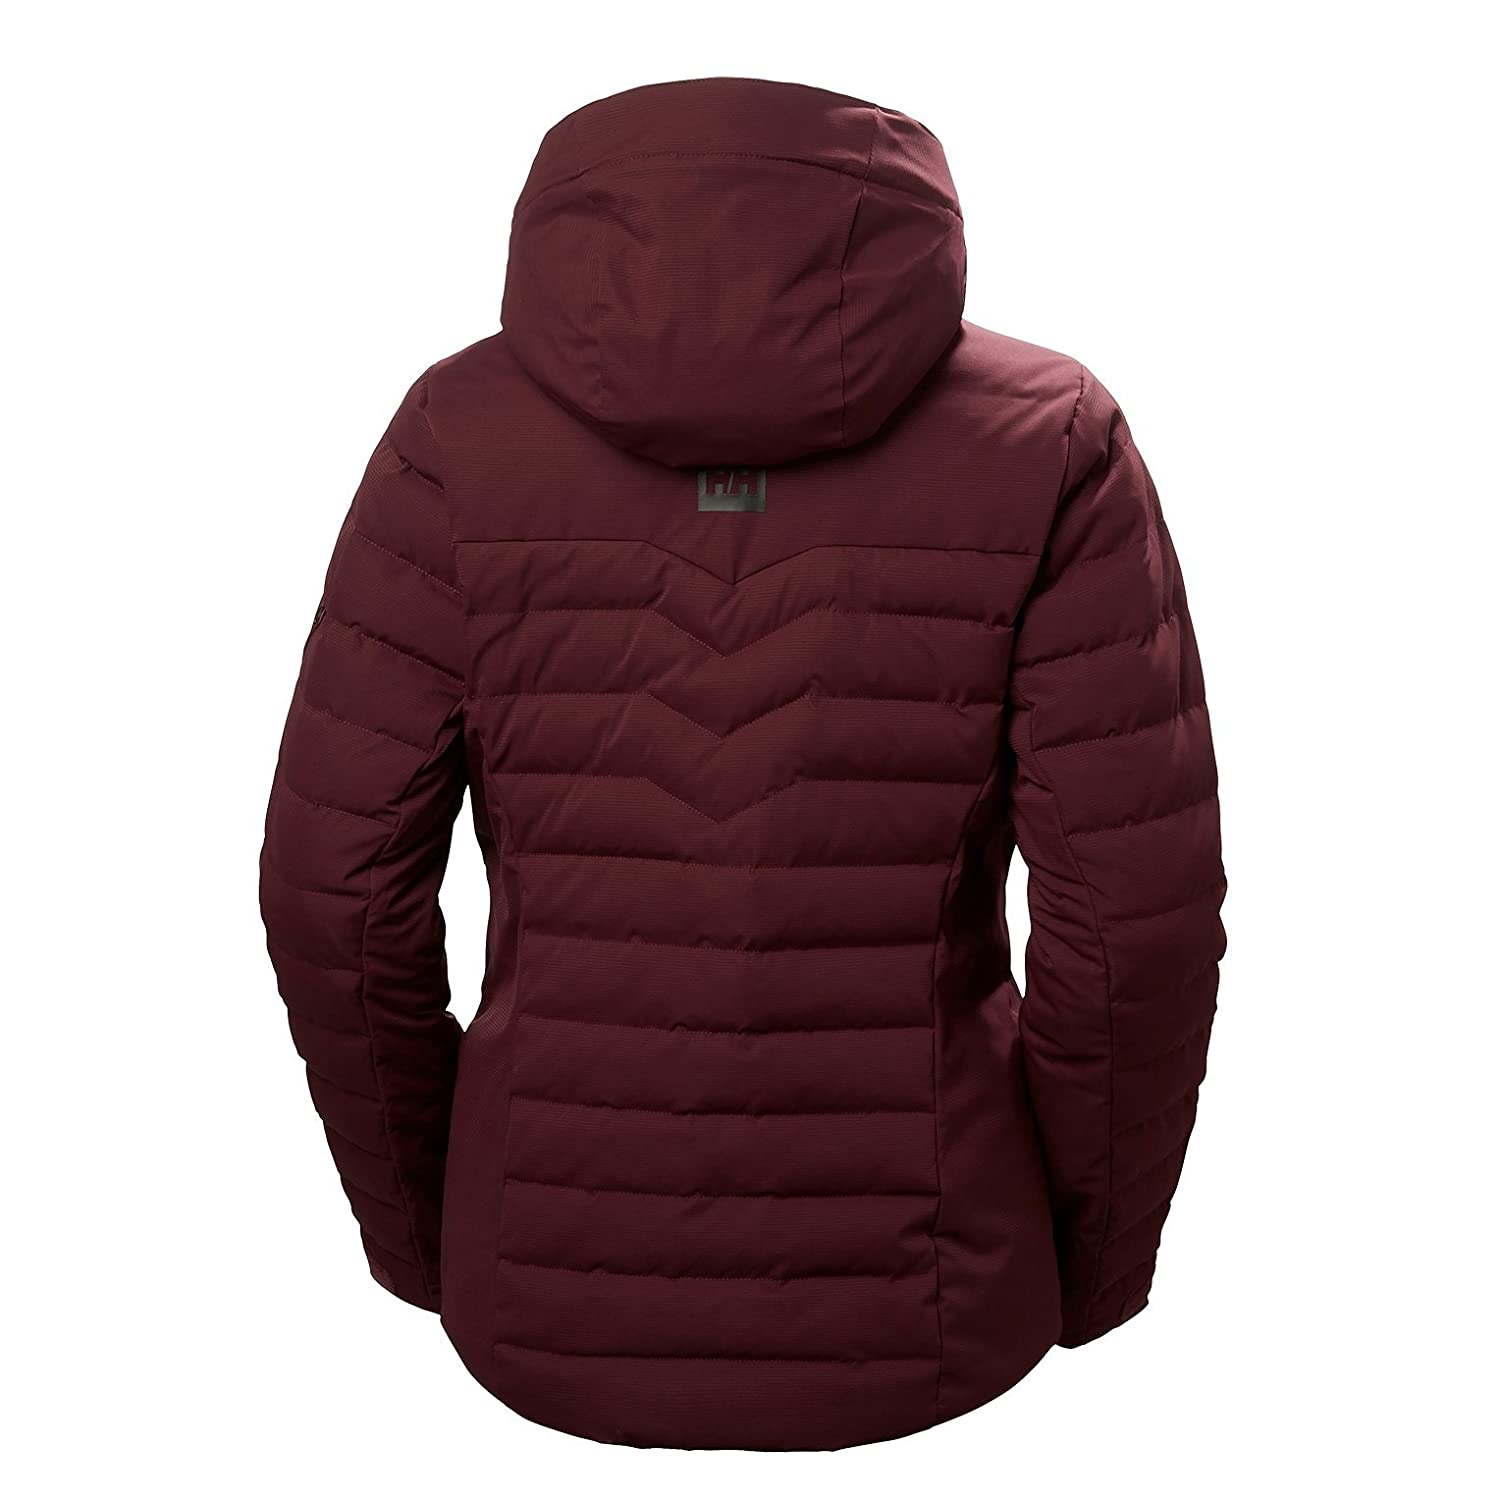 ad506978df Amazon.com  Helly Hansen 65558 Women s Limelight Jacket  Clothing